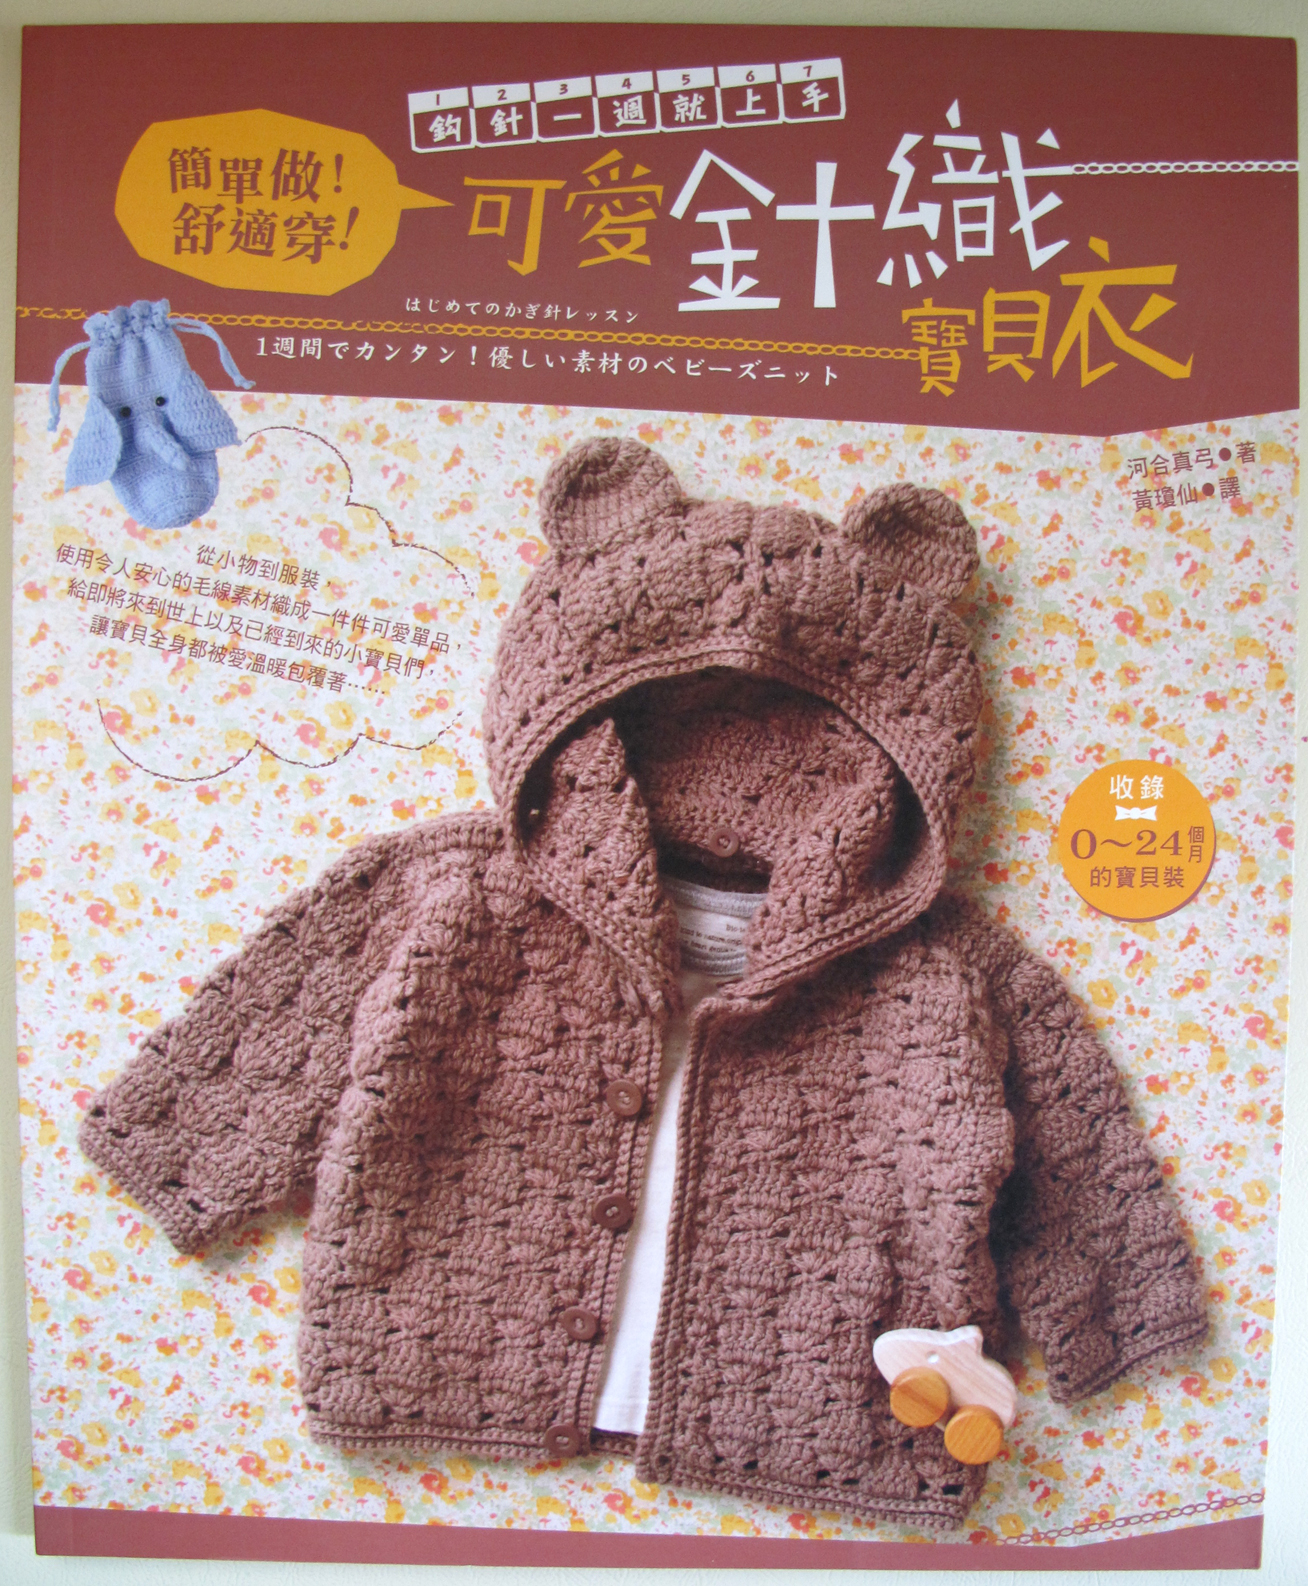 Crocheting Books : ... .com: Kawaii One Week Baby Crochet Book - Japanese Crochet Book